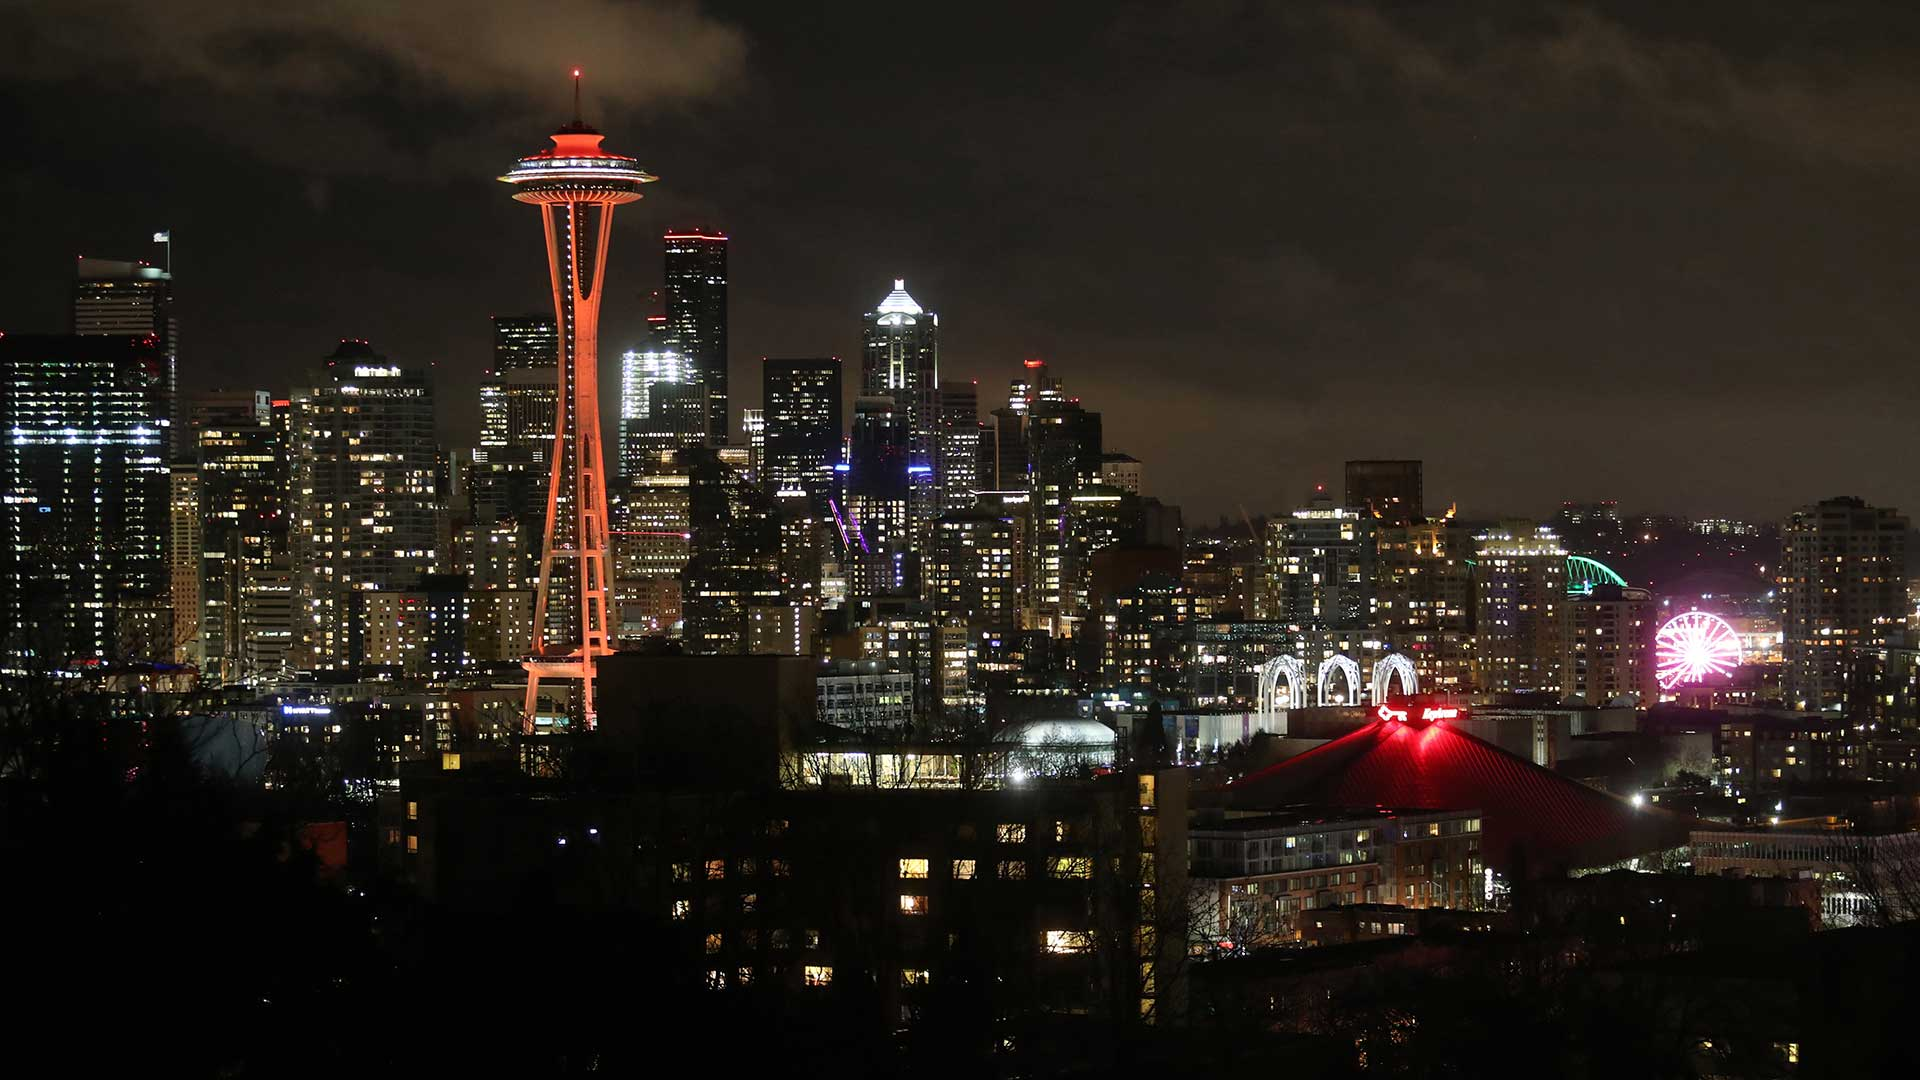 Seattle Skyline at Night with Red Space Needle